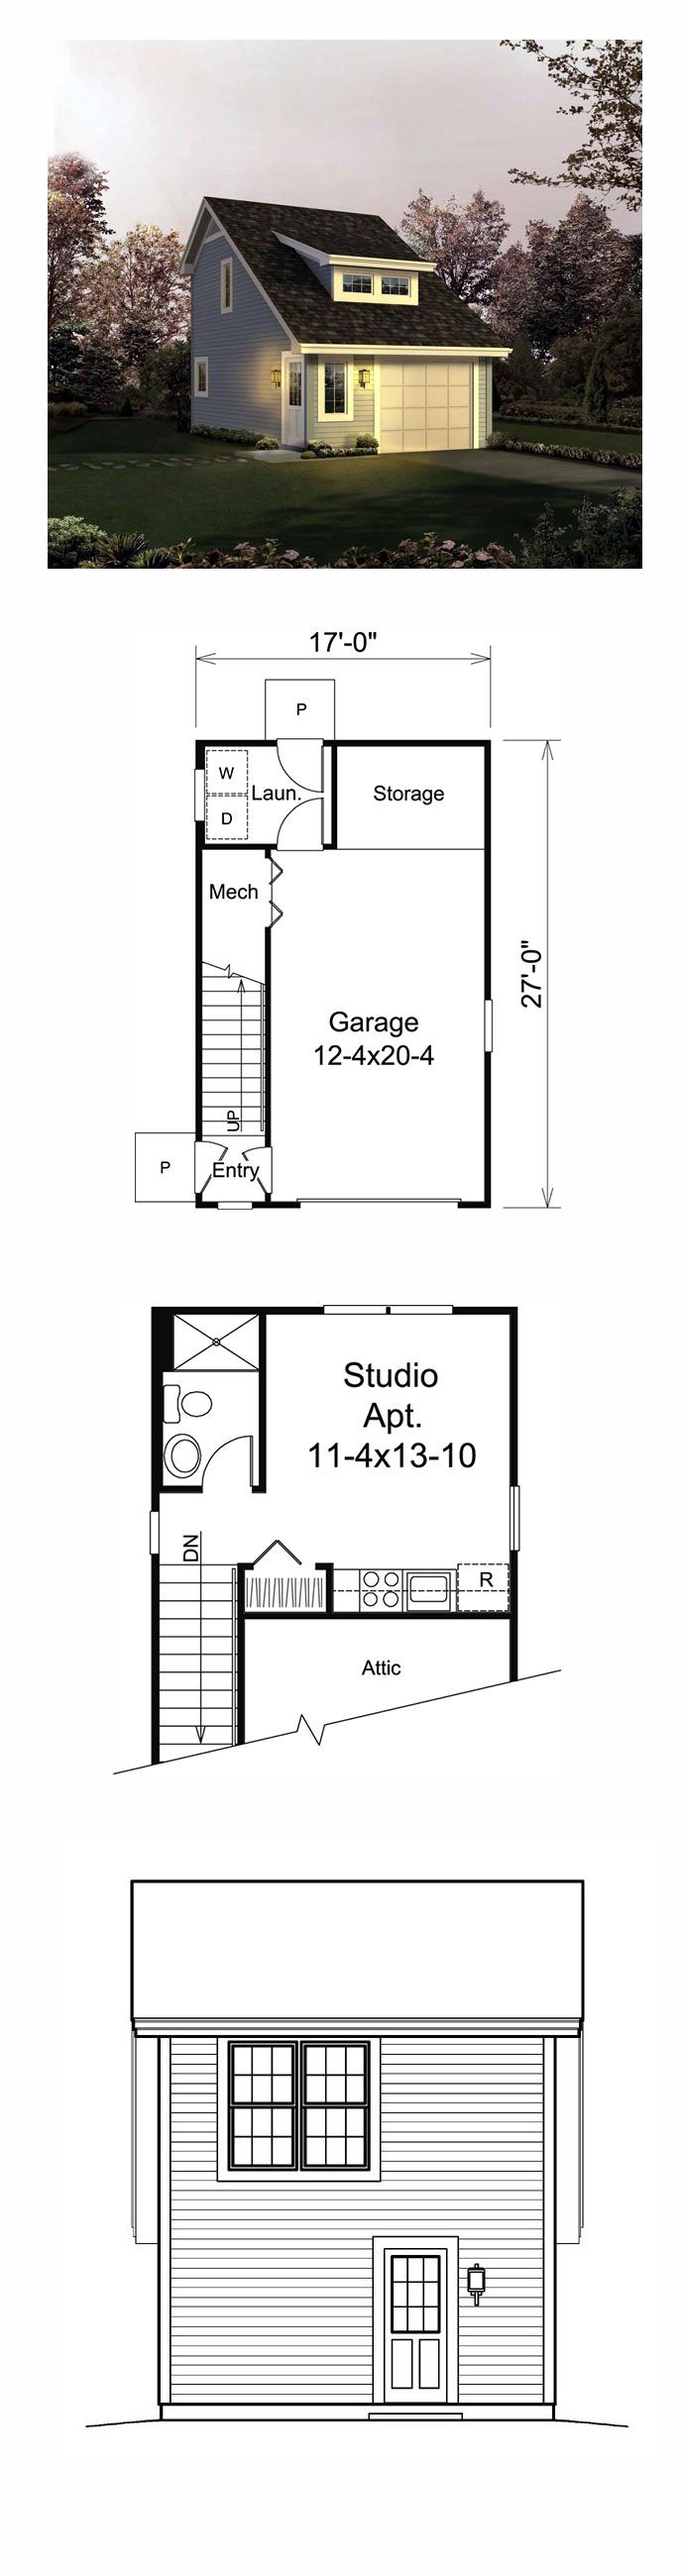 Cabin cottage country saltbox traditional garage plan for Garage apartment plans 1 bedroom